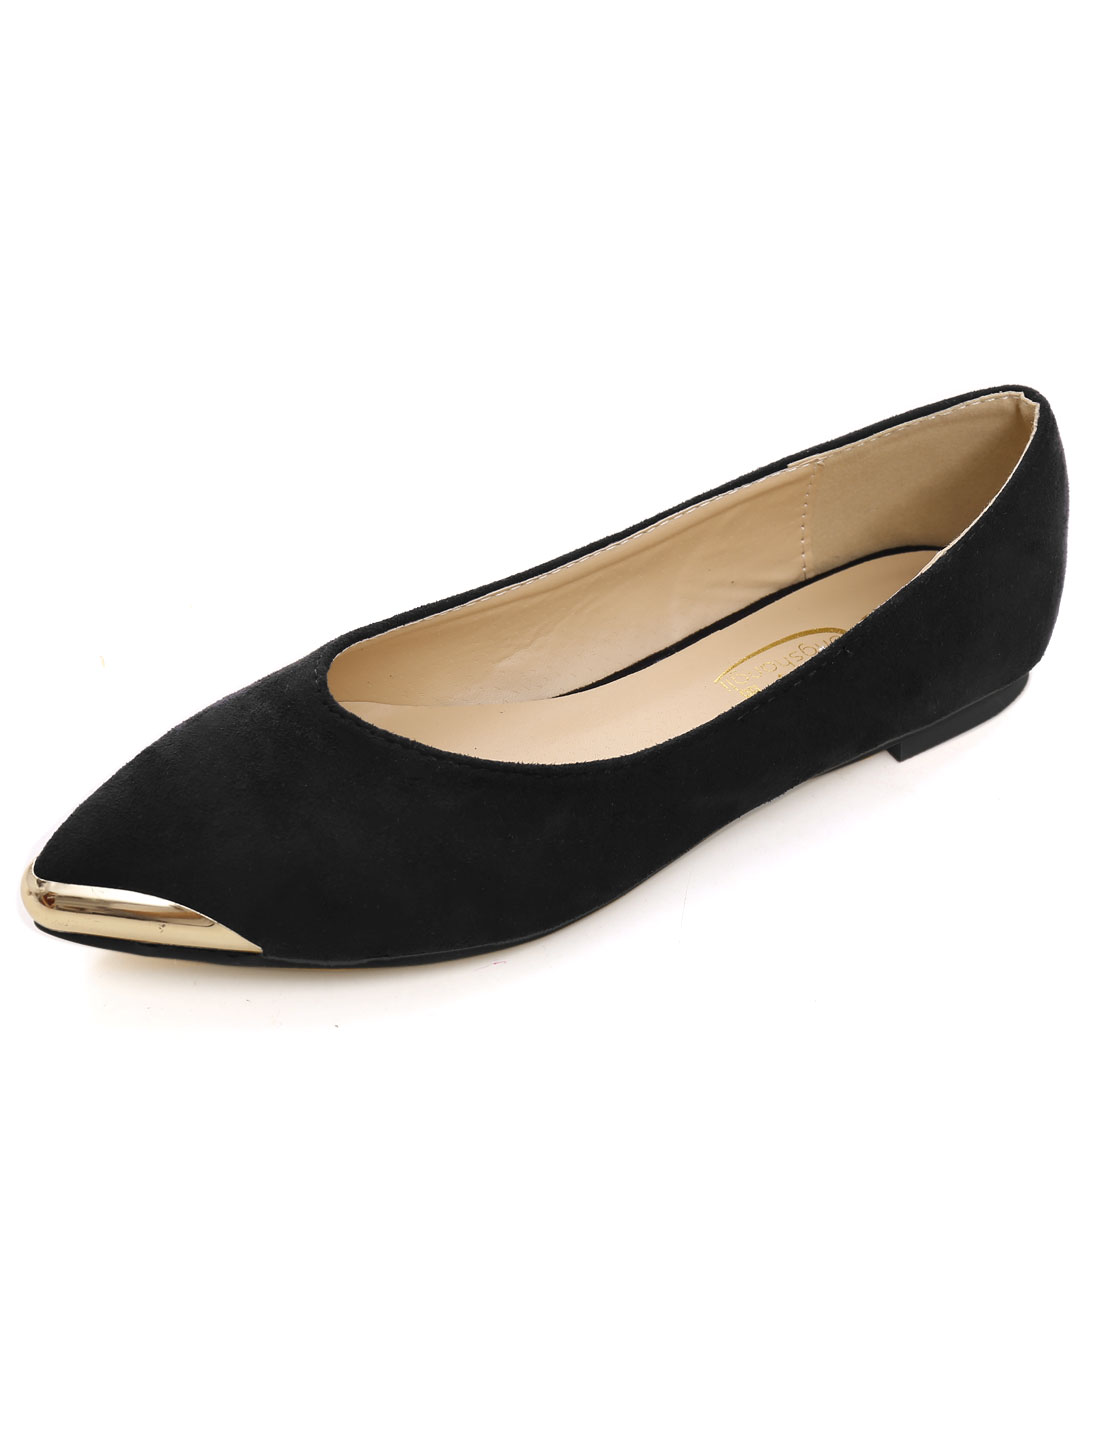 Ladies Metallic Decor Textured Outsole V-Cut Vamp Flats Iron Black US 8